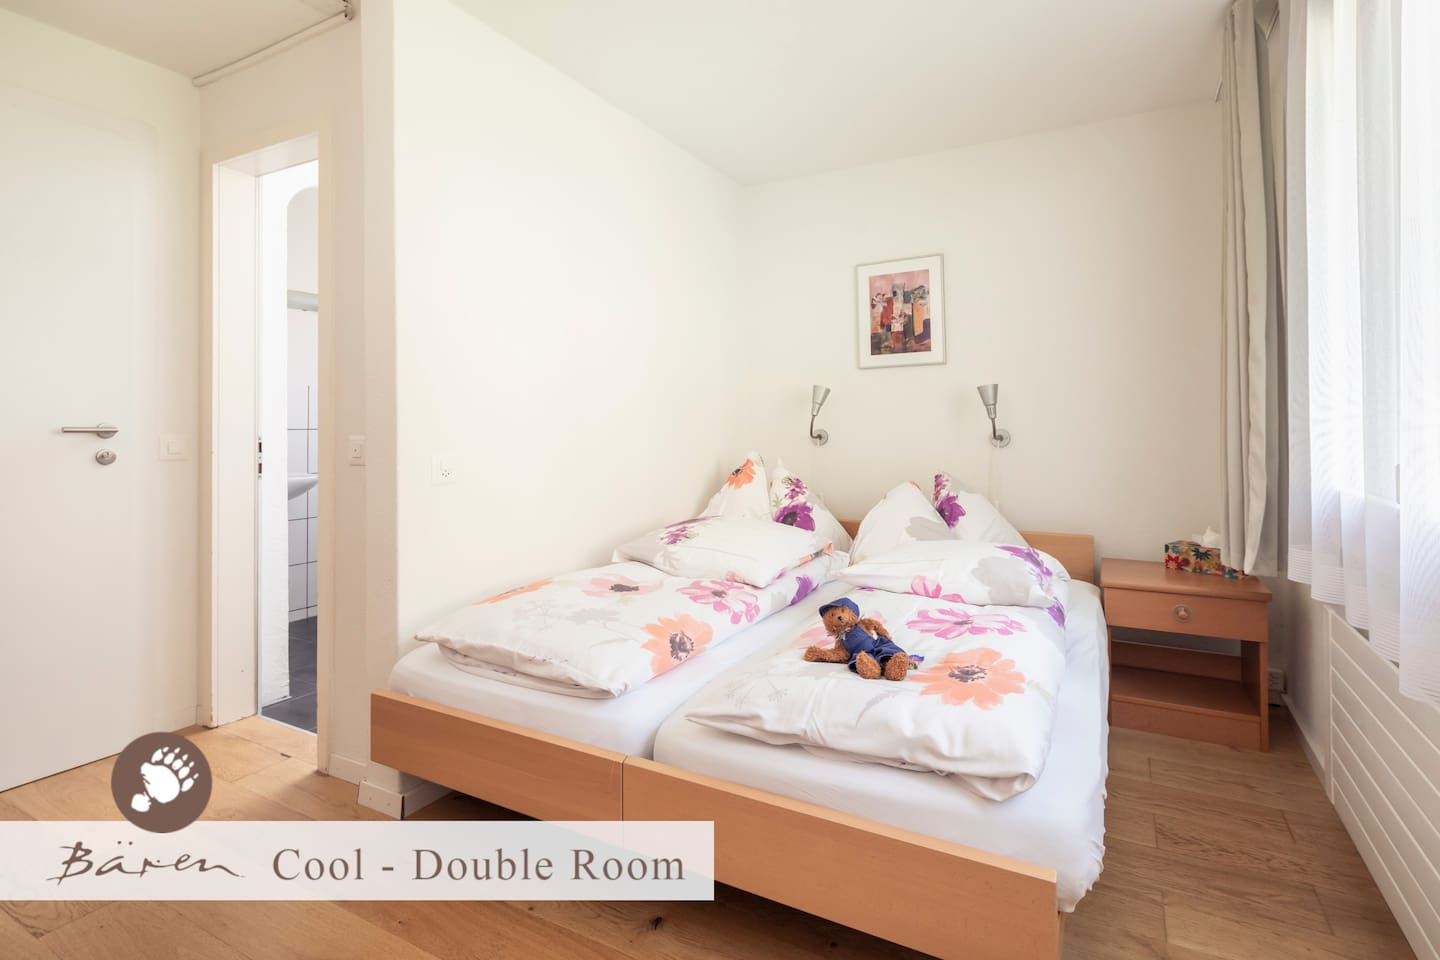 Cool - Double Room